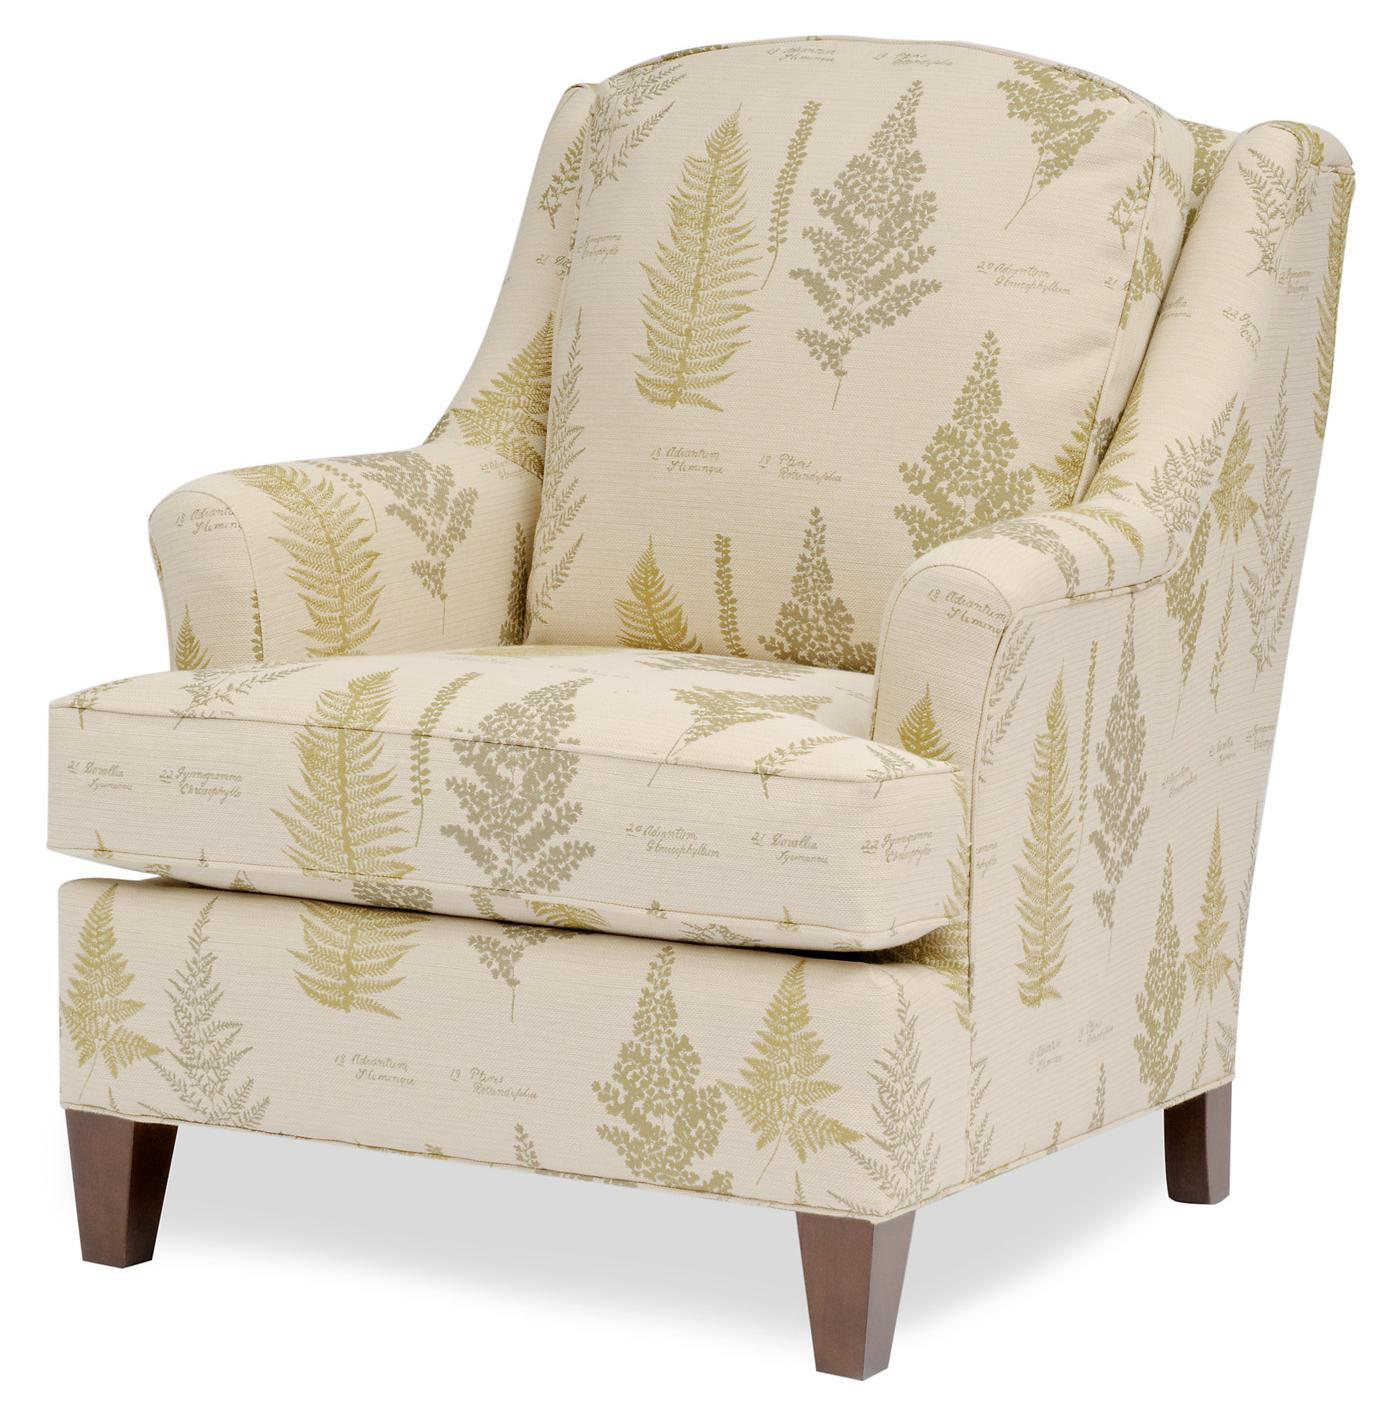 Smith Brothers 944 Upholstered Chair - Item Number: 944-30